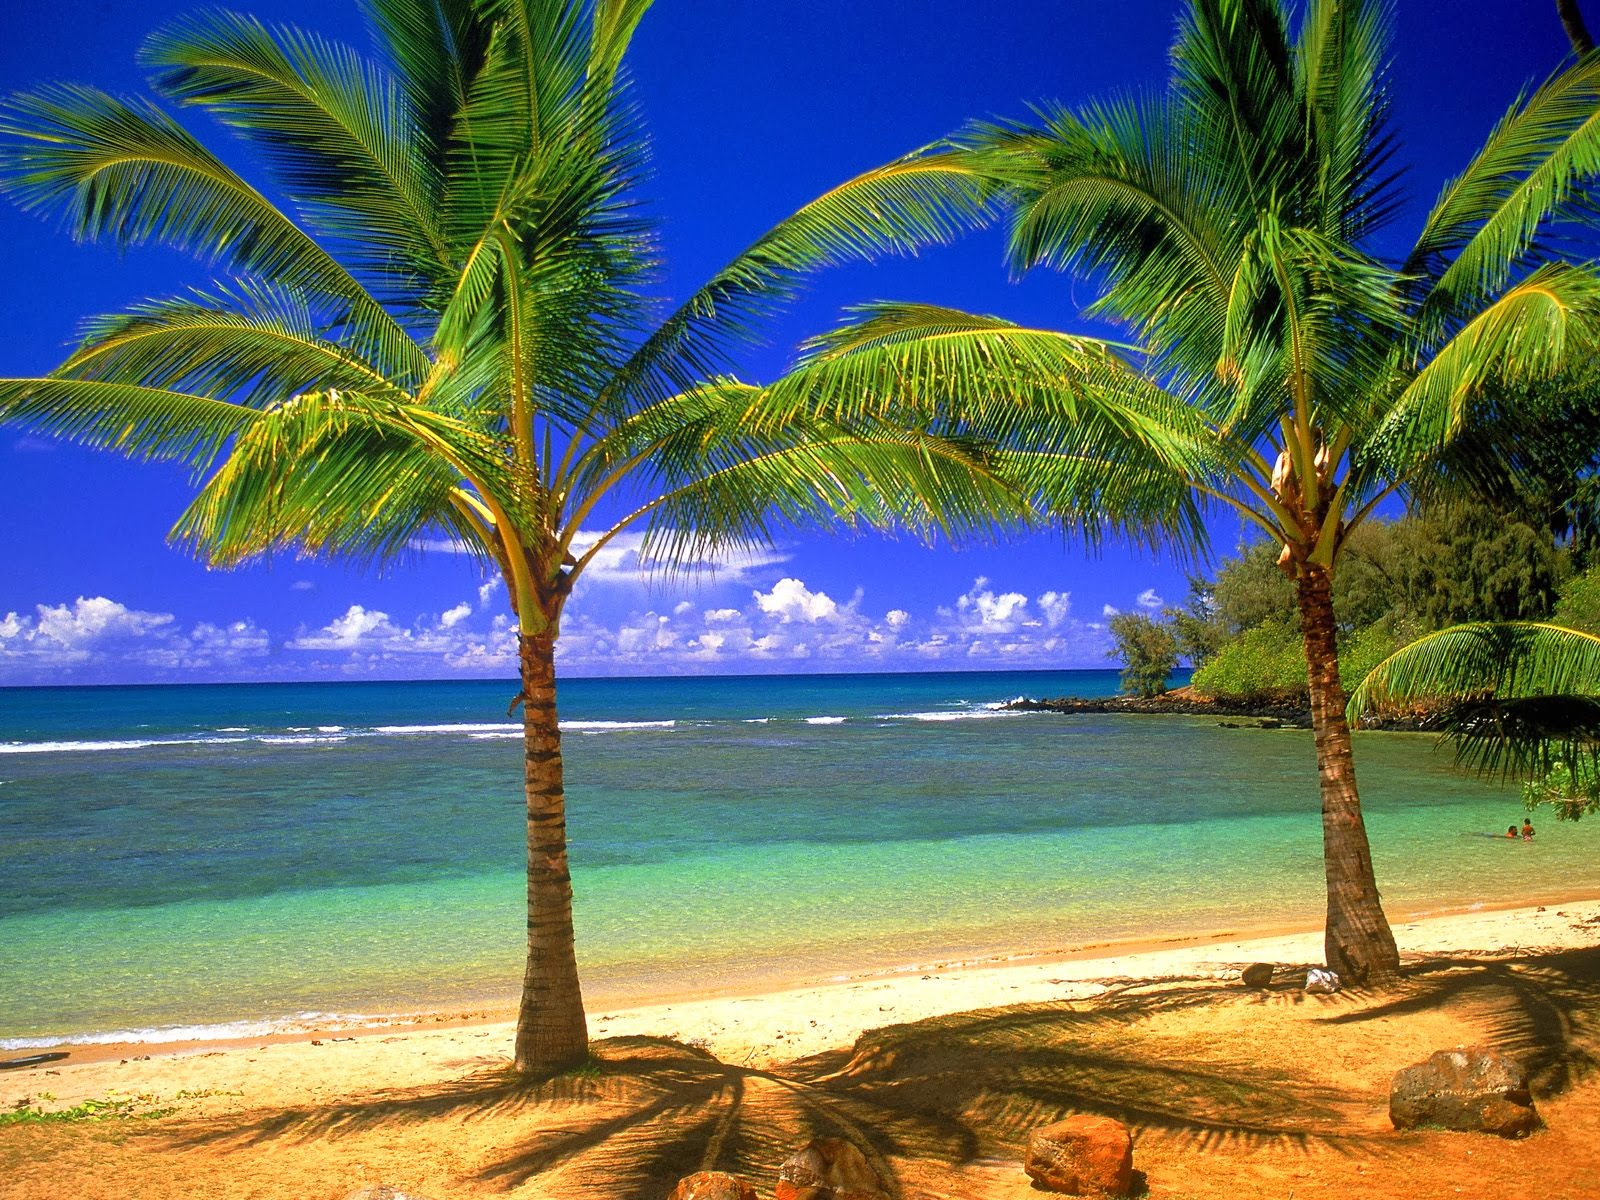 Tropical Beaches Beautiful nature Images And Wallpapers